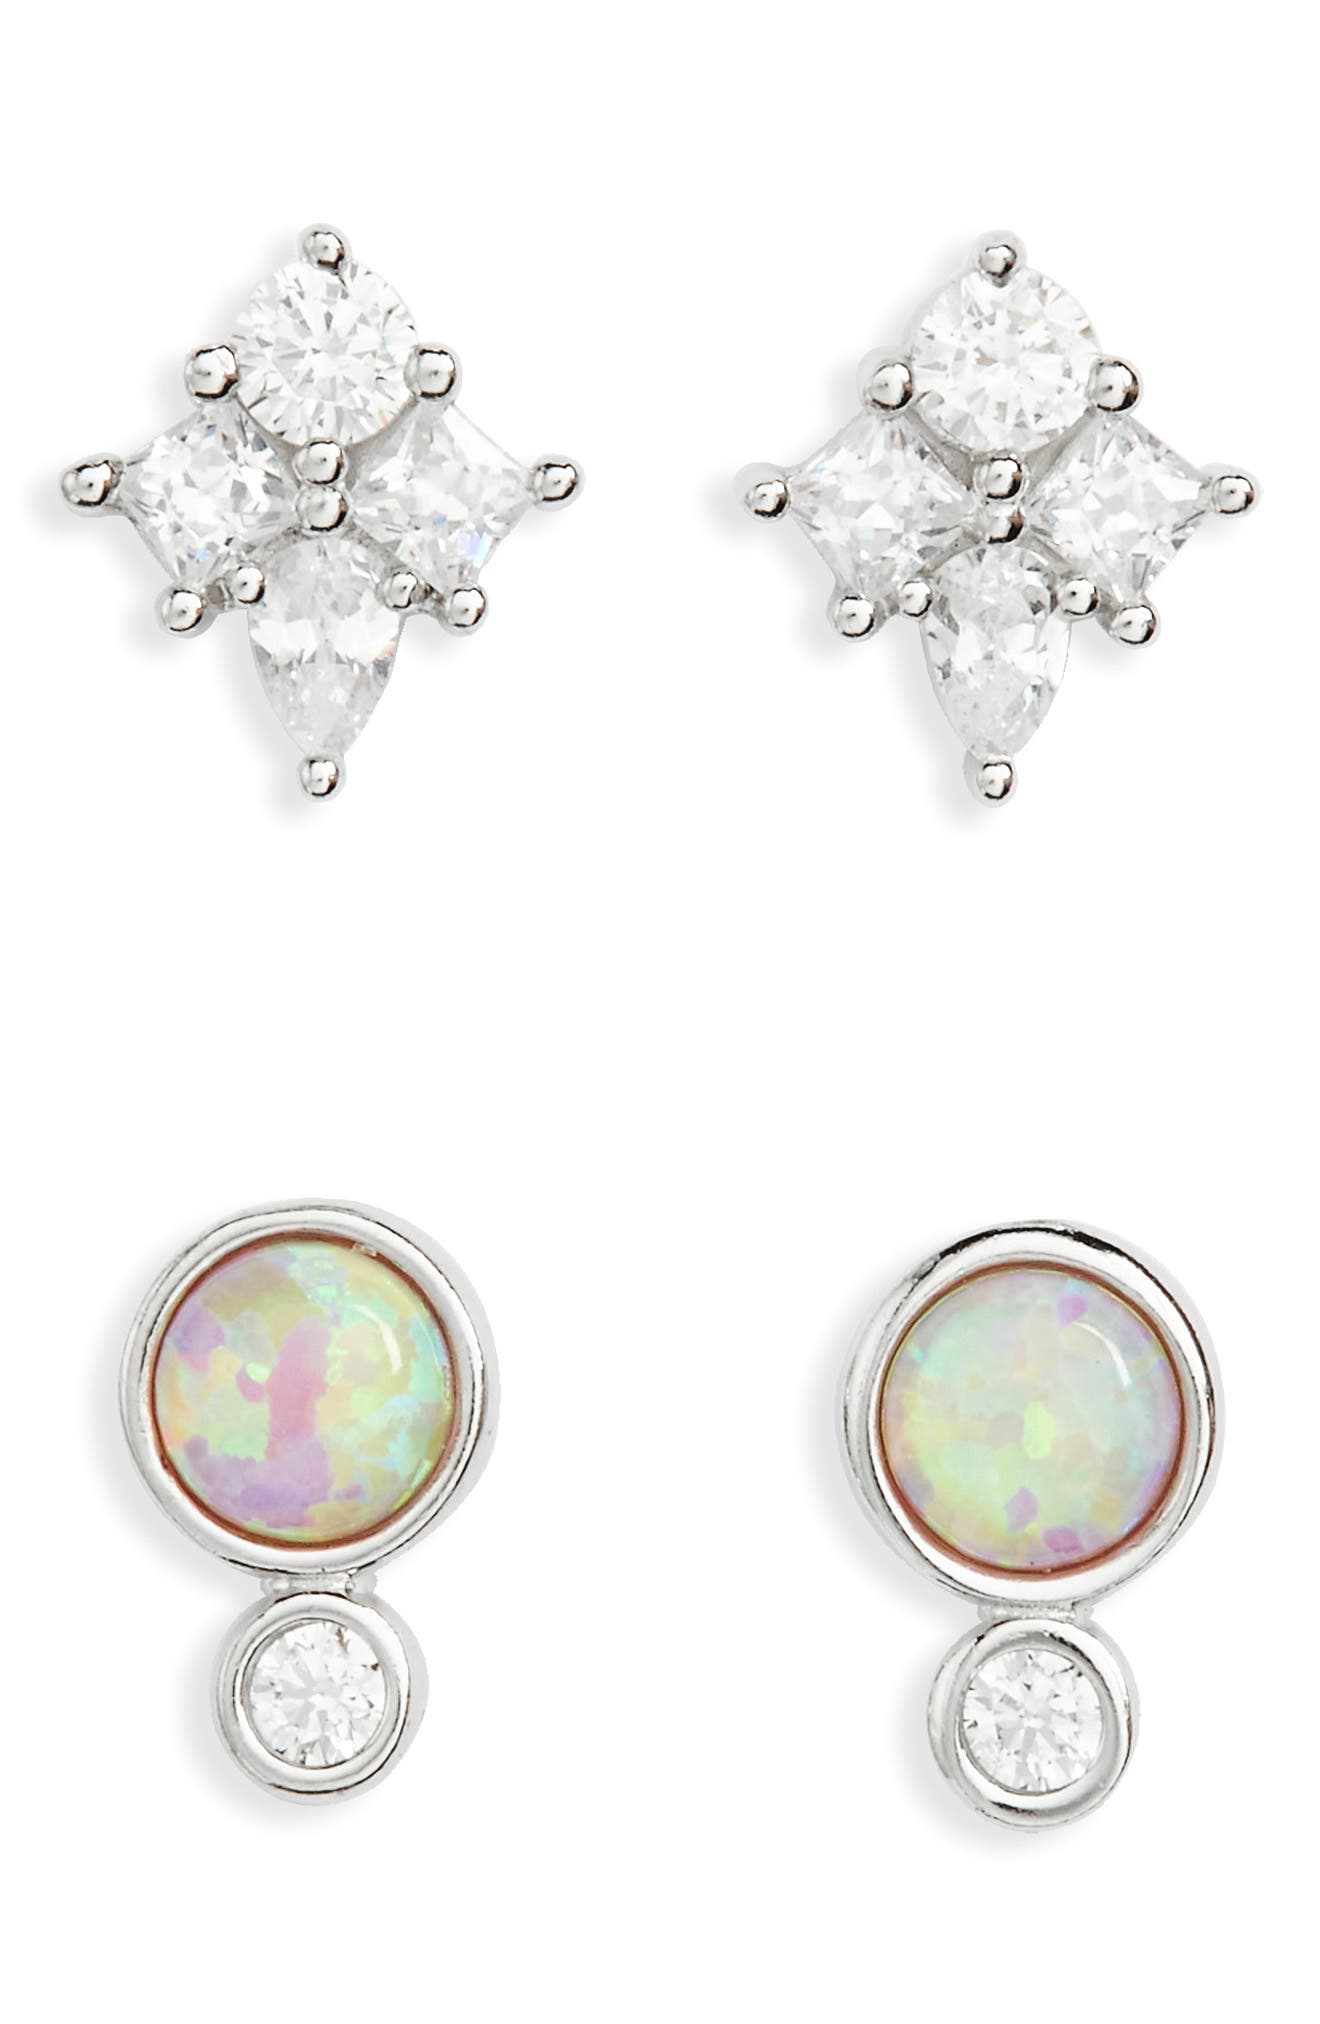 Nordstrom Set of 2 Opal & Cubic Zirconia Stud Earrings